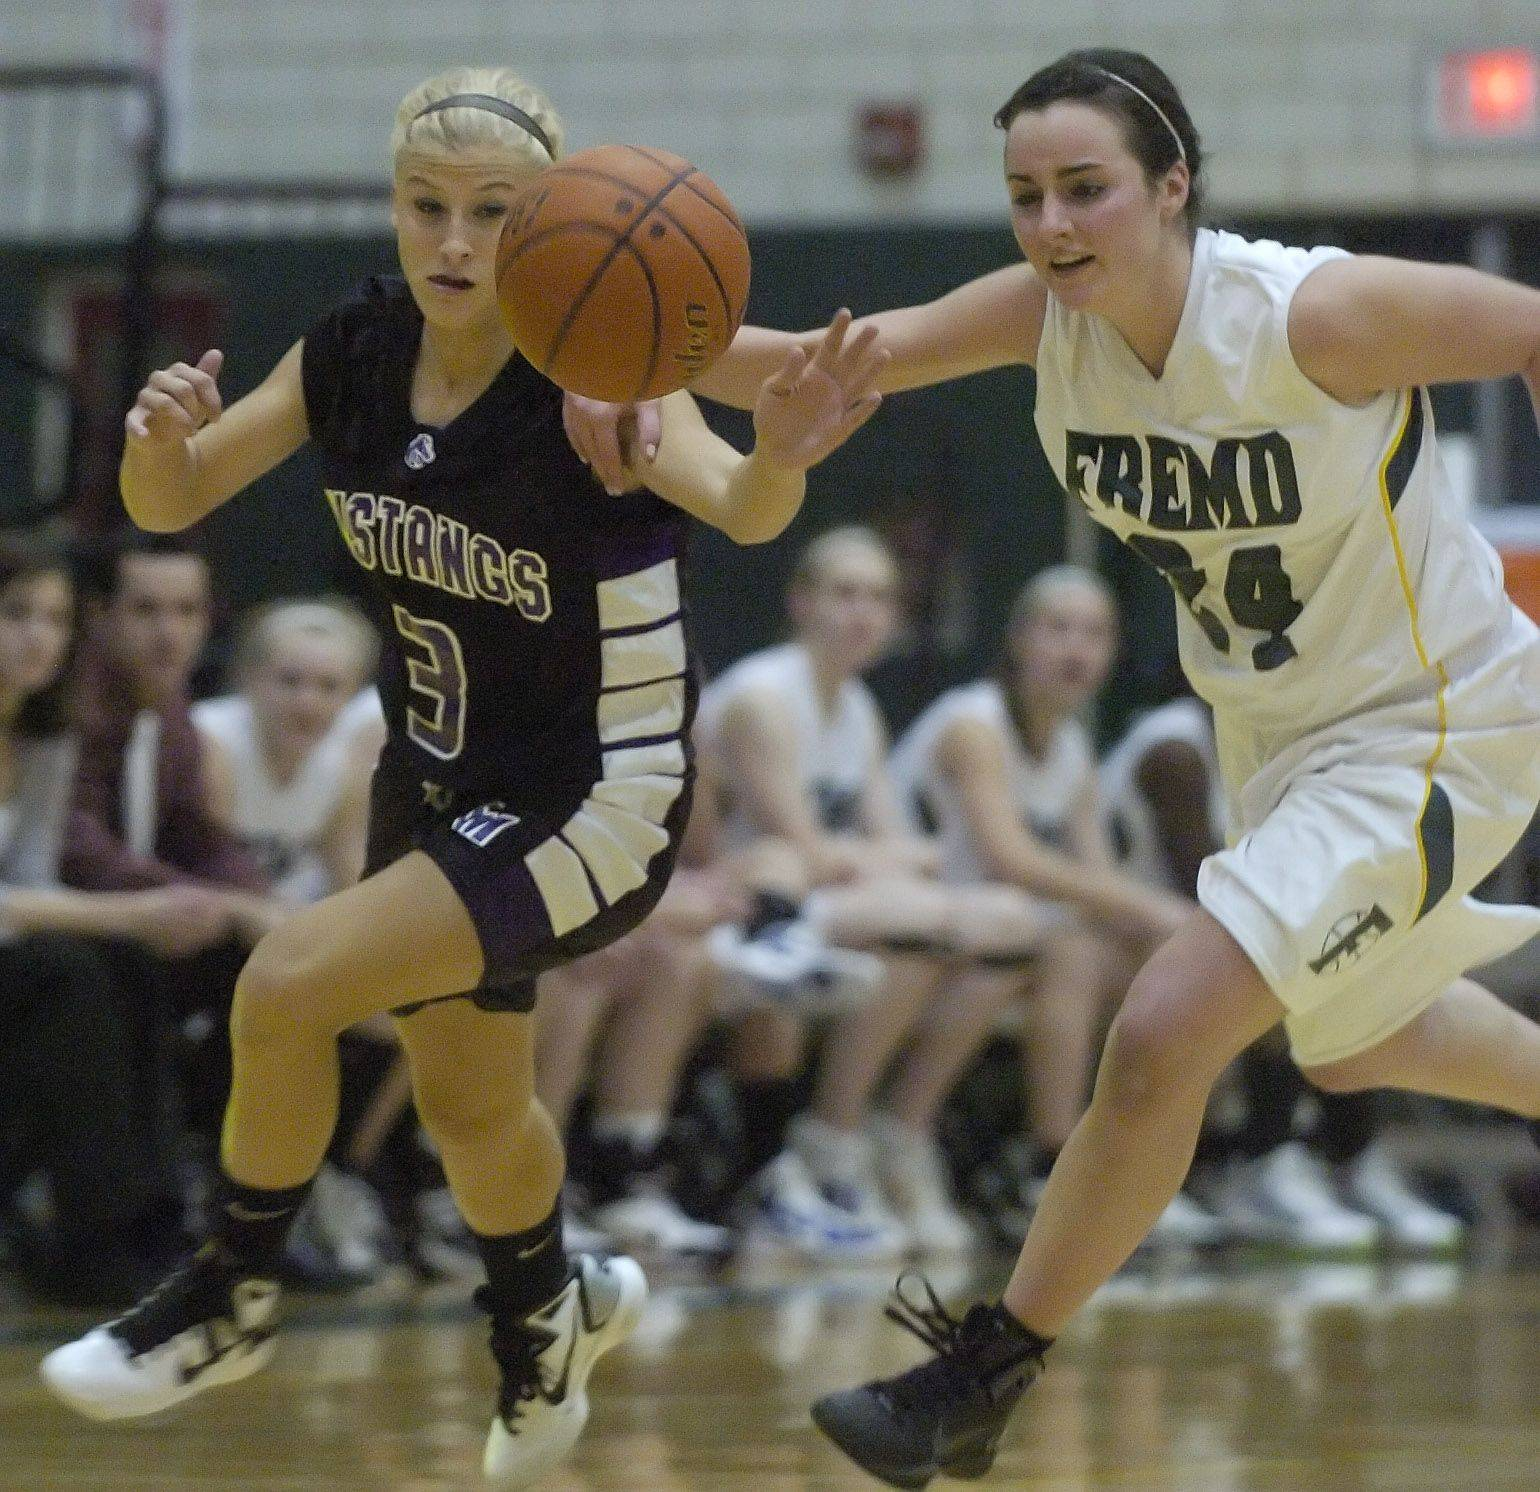 Jacqueline Kemph of Rolling Meadows, left, and Bridget Kubis of Fremd chase a loose ball.